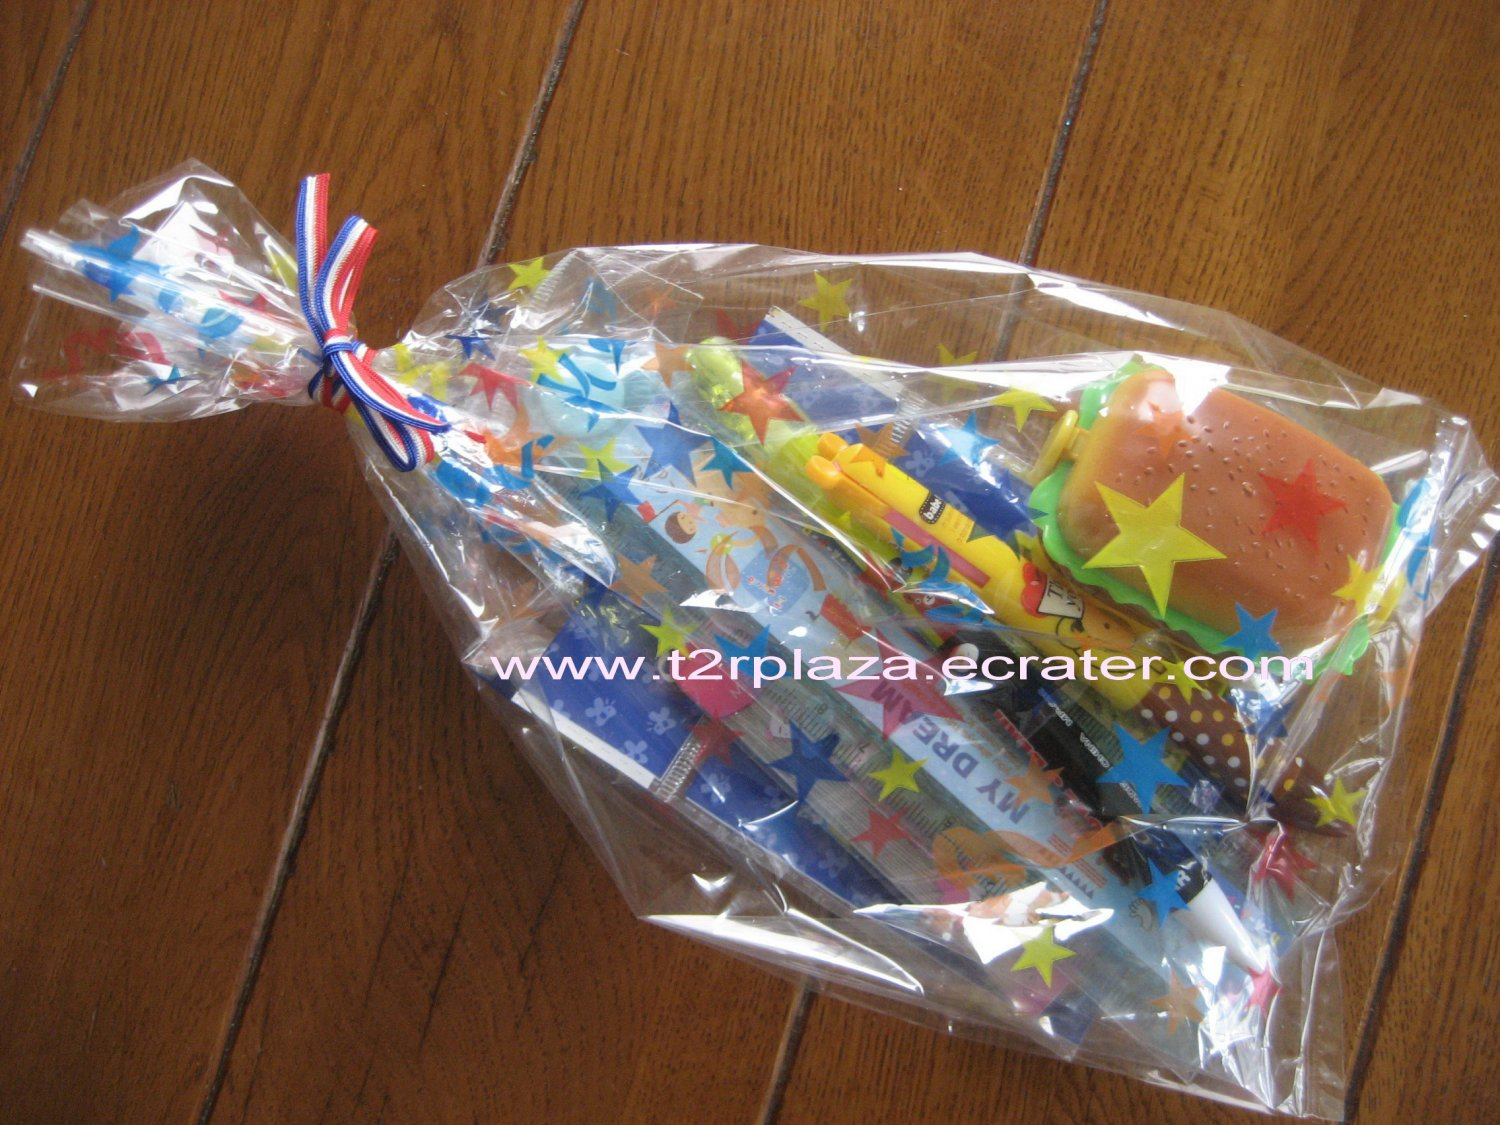 Buy announcements gifts stationery - $10 Deluxe Lovely Stationery Party/Gift Bag-XX110003